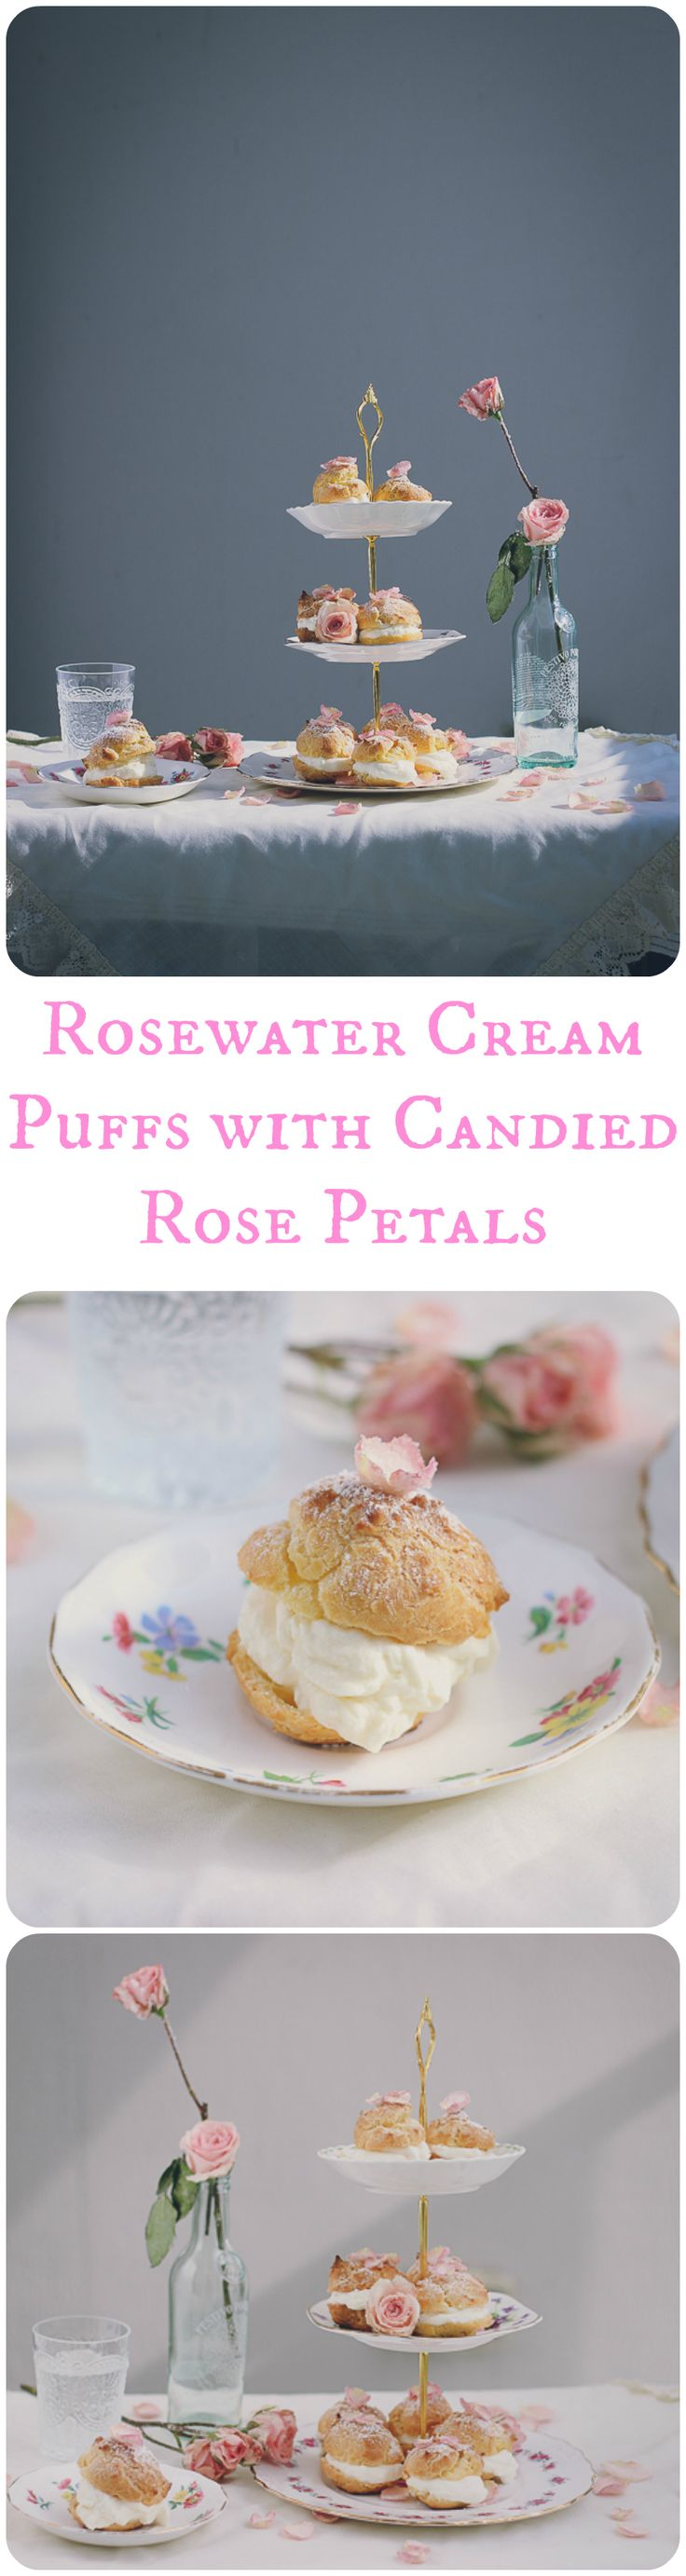 Rosewater Cream Puffs with Candied Rose Petals. Easy, elegant, and fun! #PersianRecipe #creampuff #rosewater